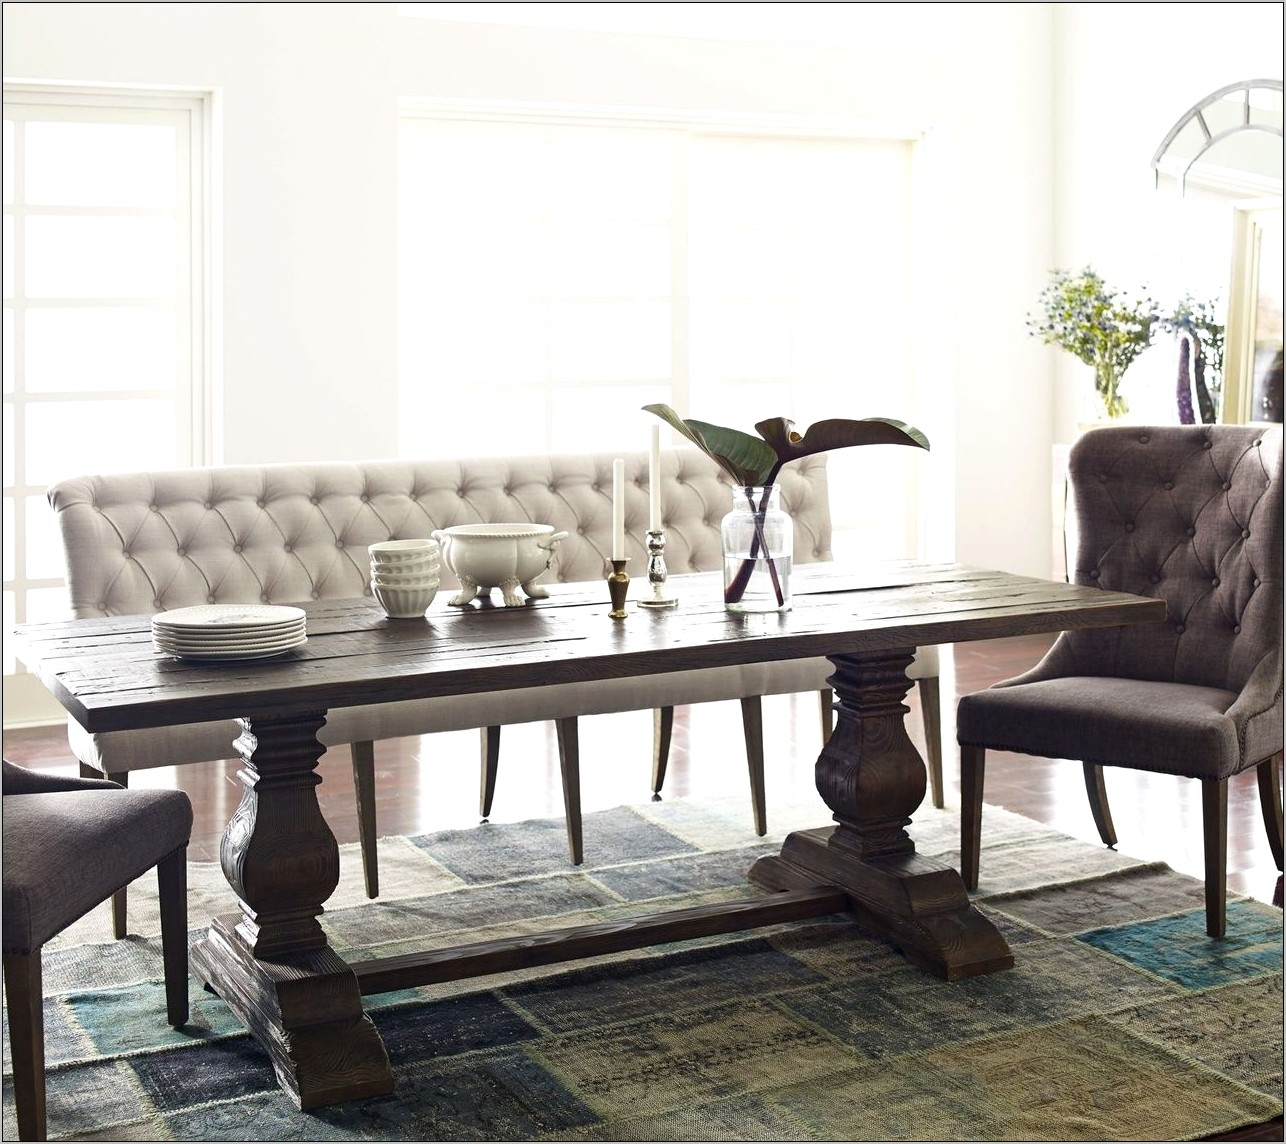 Tufted Bench Dining Room Decor